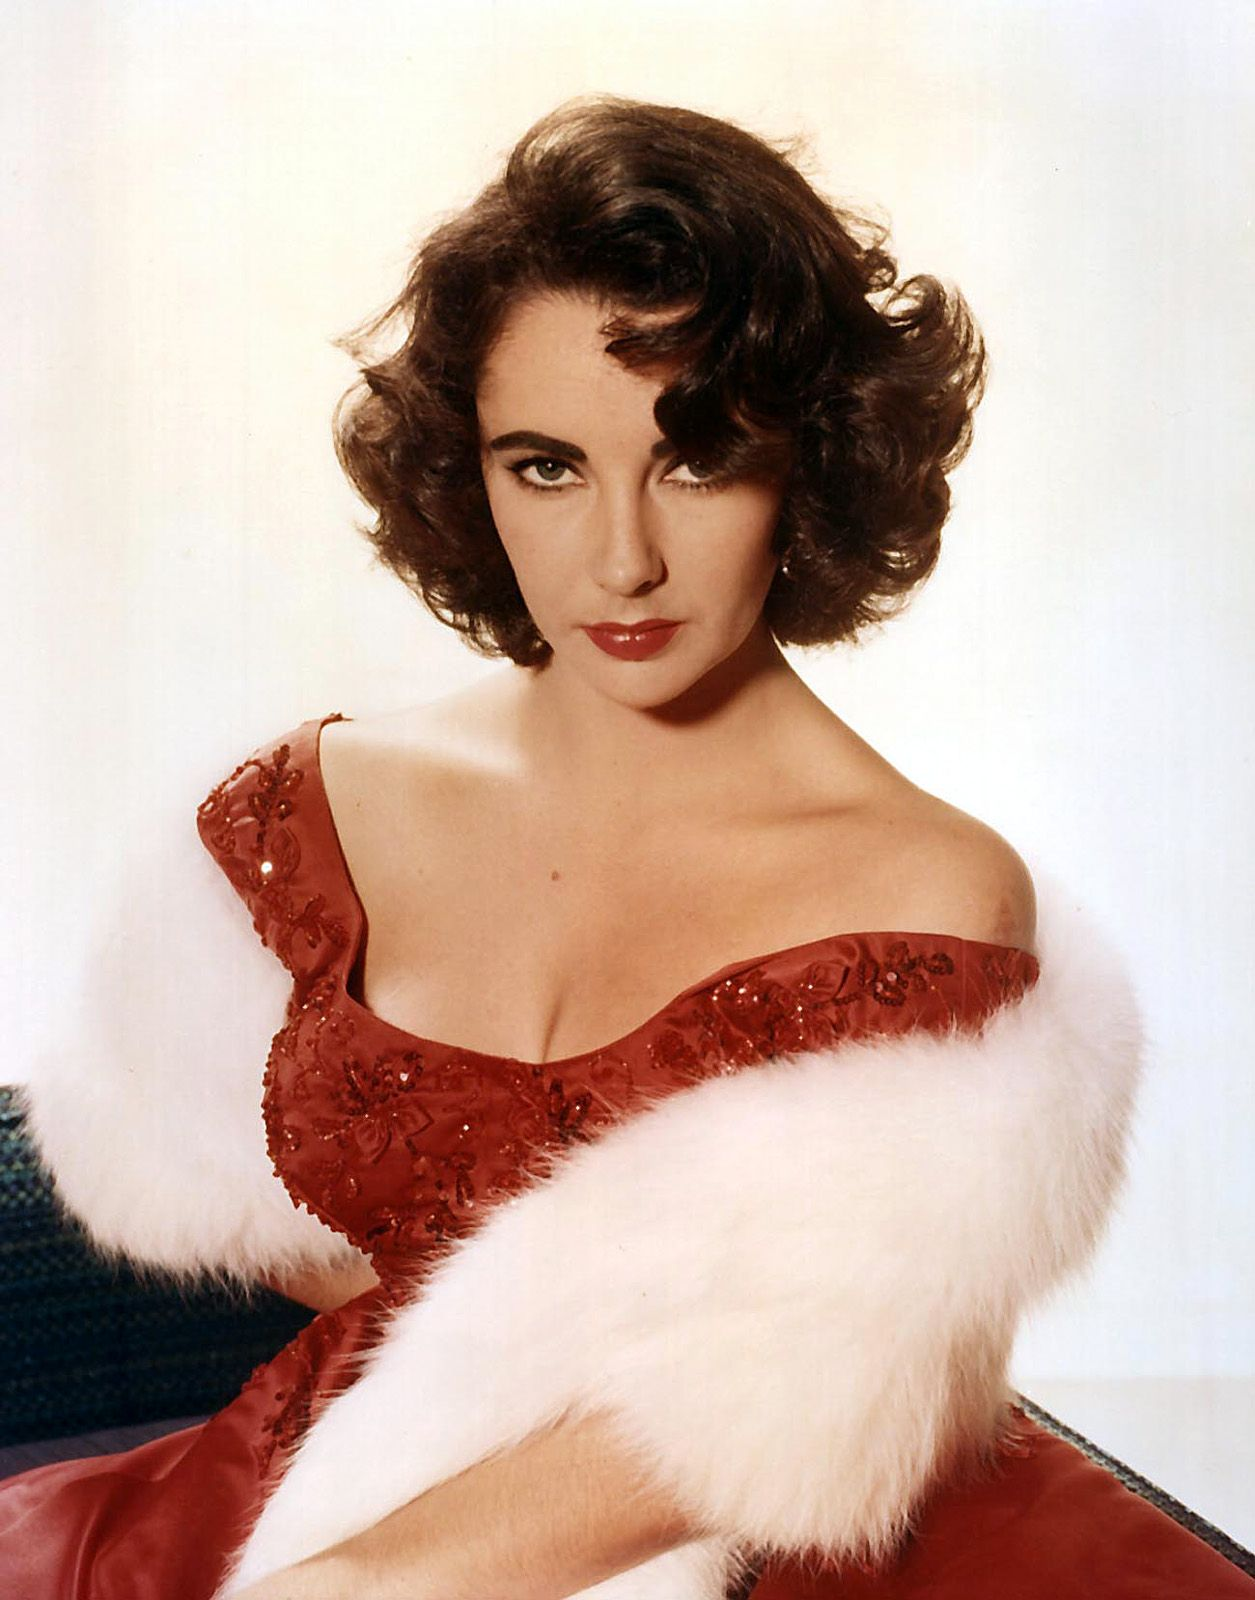 14 Fad Diets You Should Absolutely Never Try | Elizabeth taylor